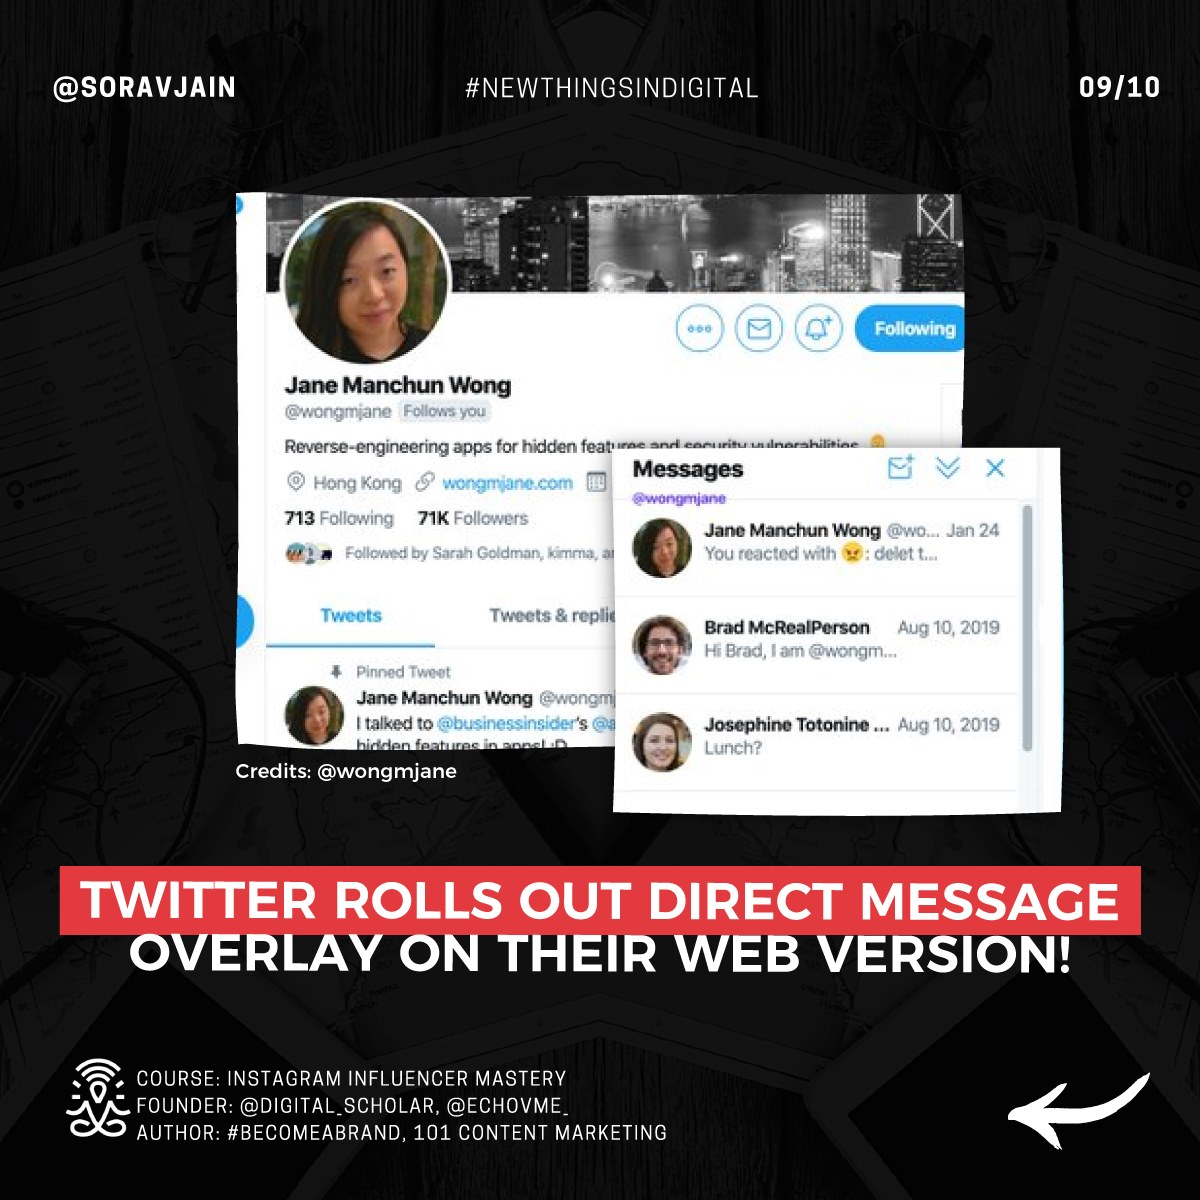 Twitter rolls our Direct Message overlay on their web version